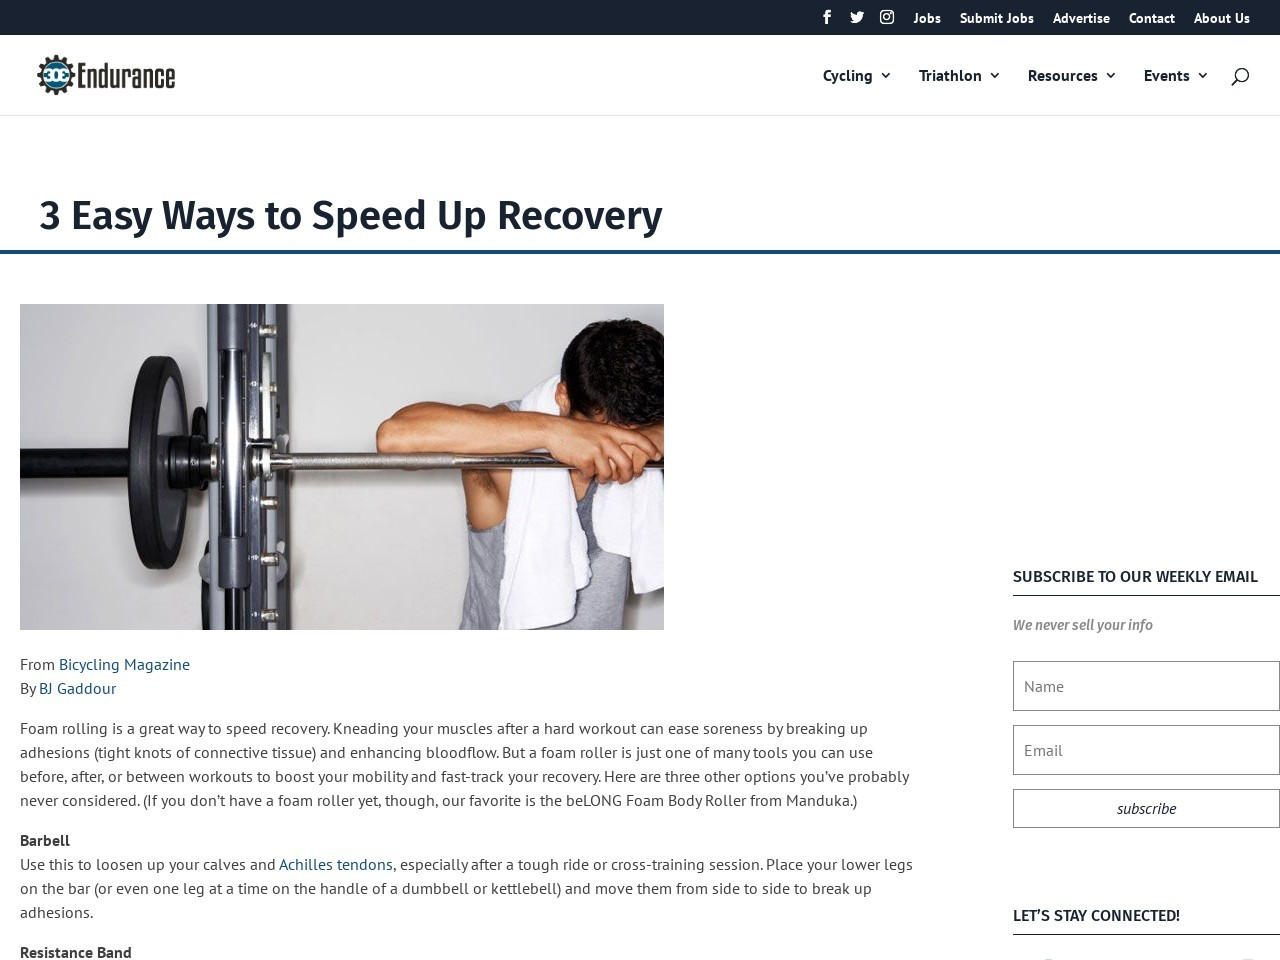 3 Easy Ways to Speed Up Recovery